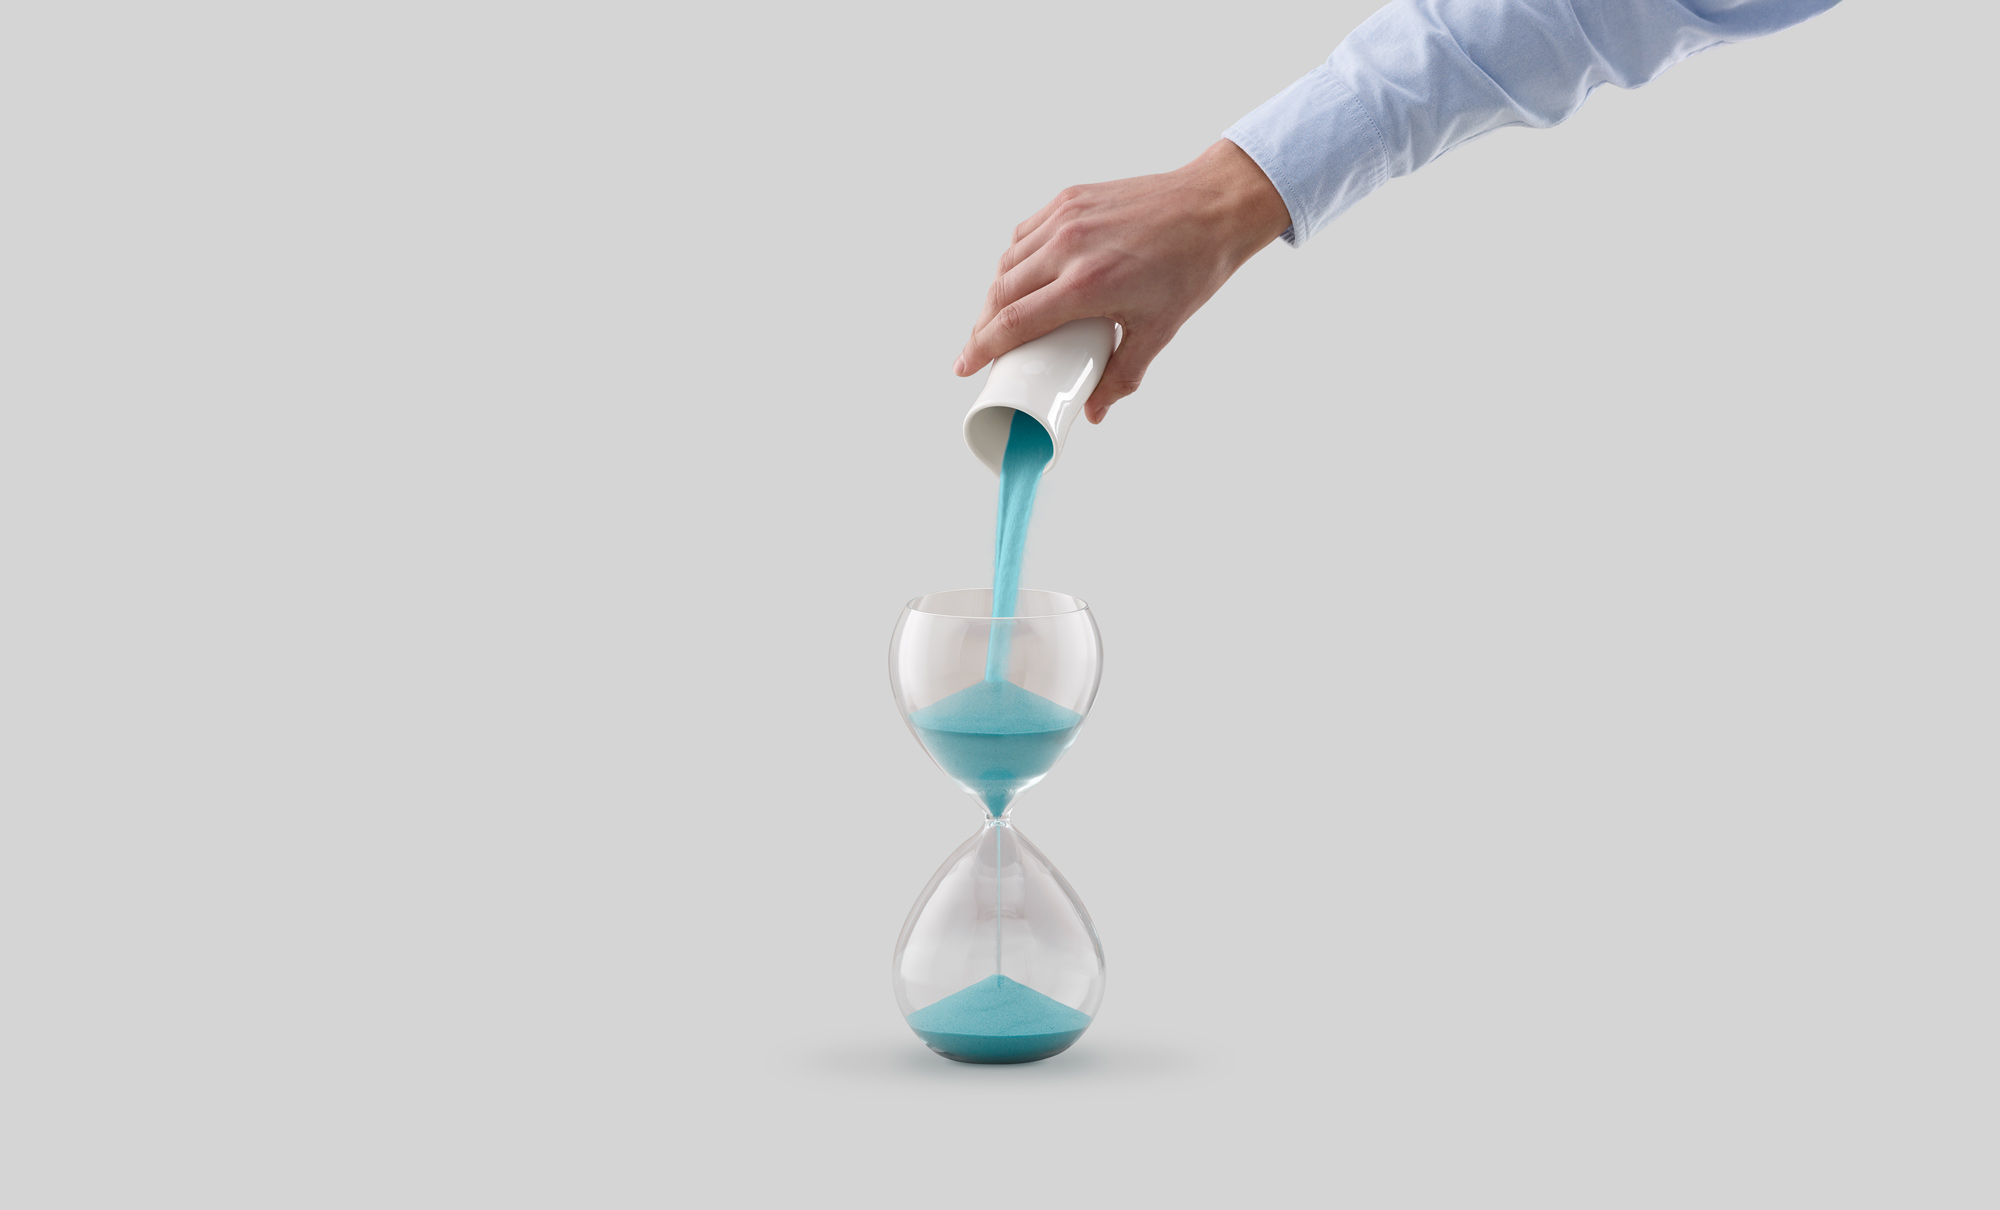 A hand pouring more sand into the top of an hourglass